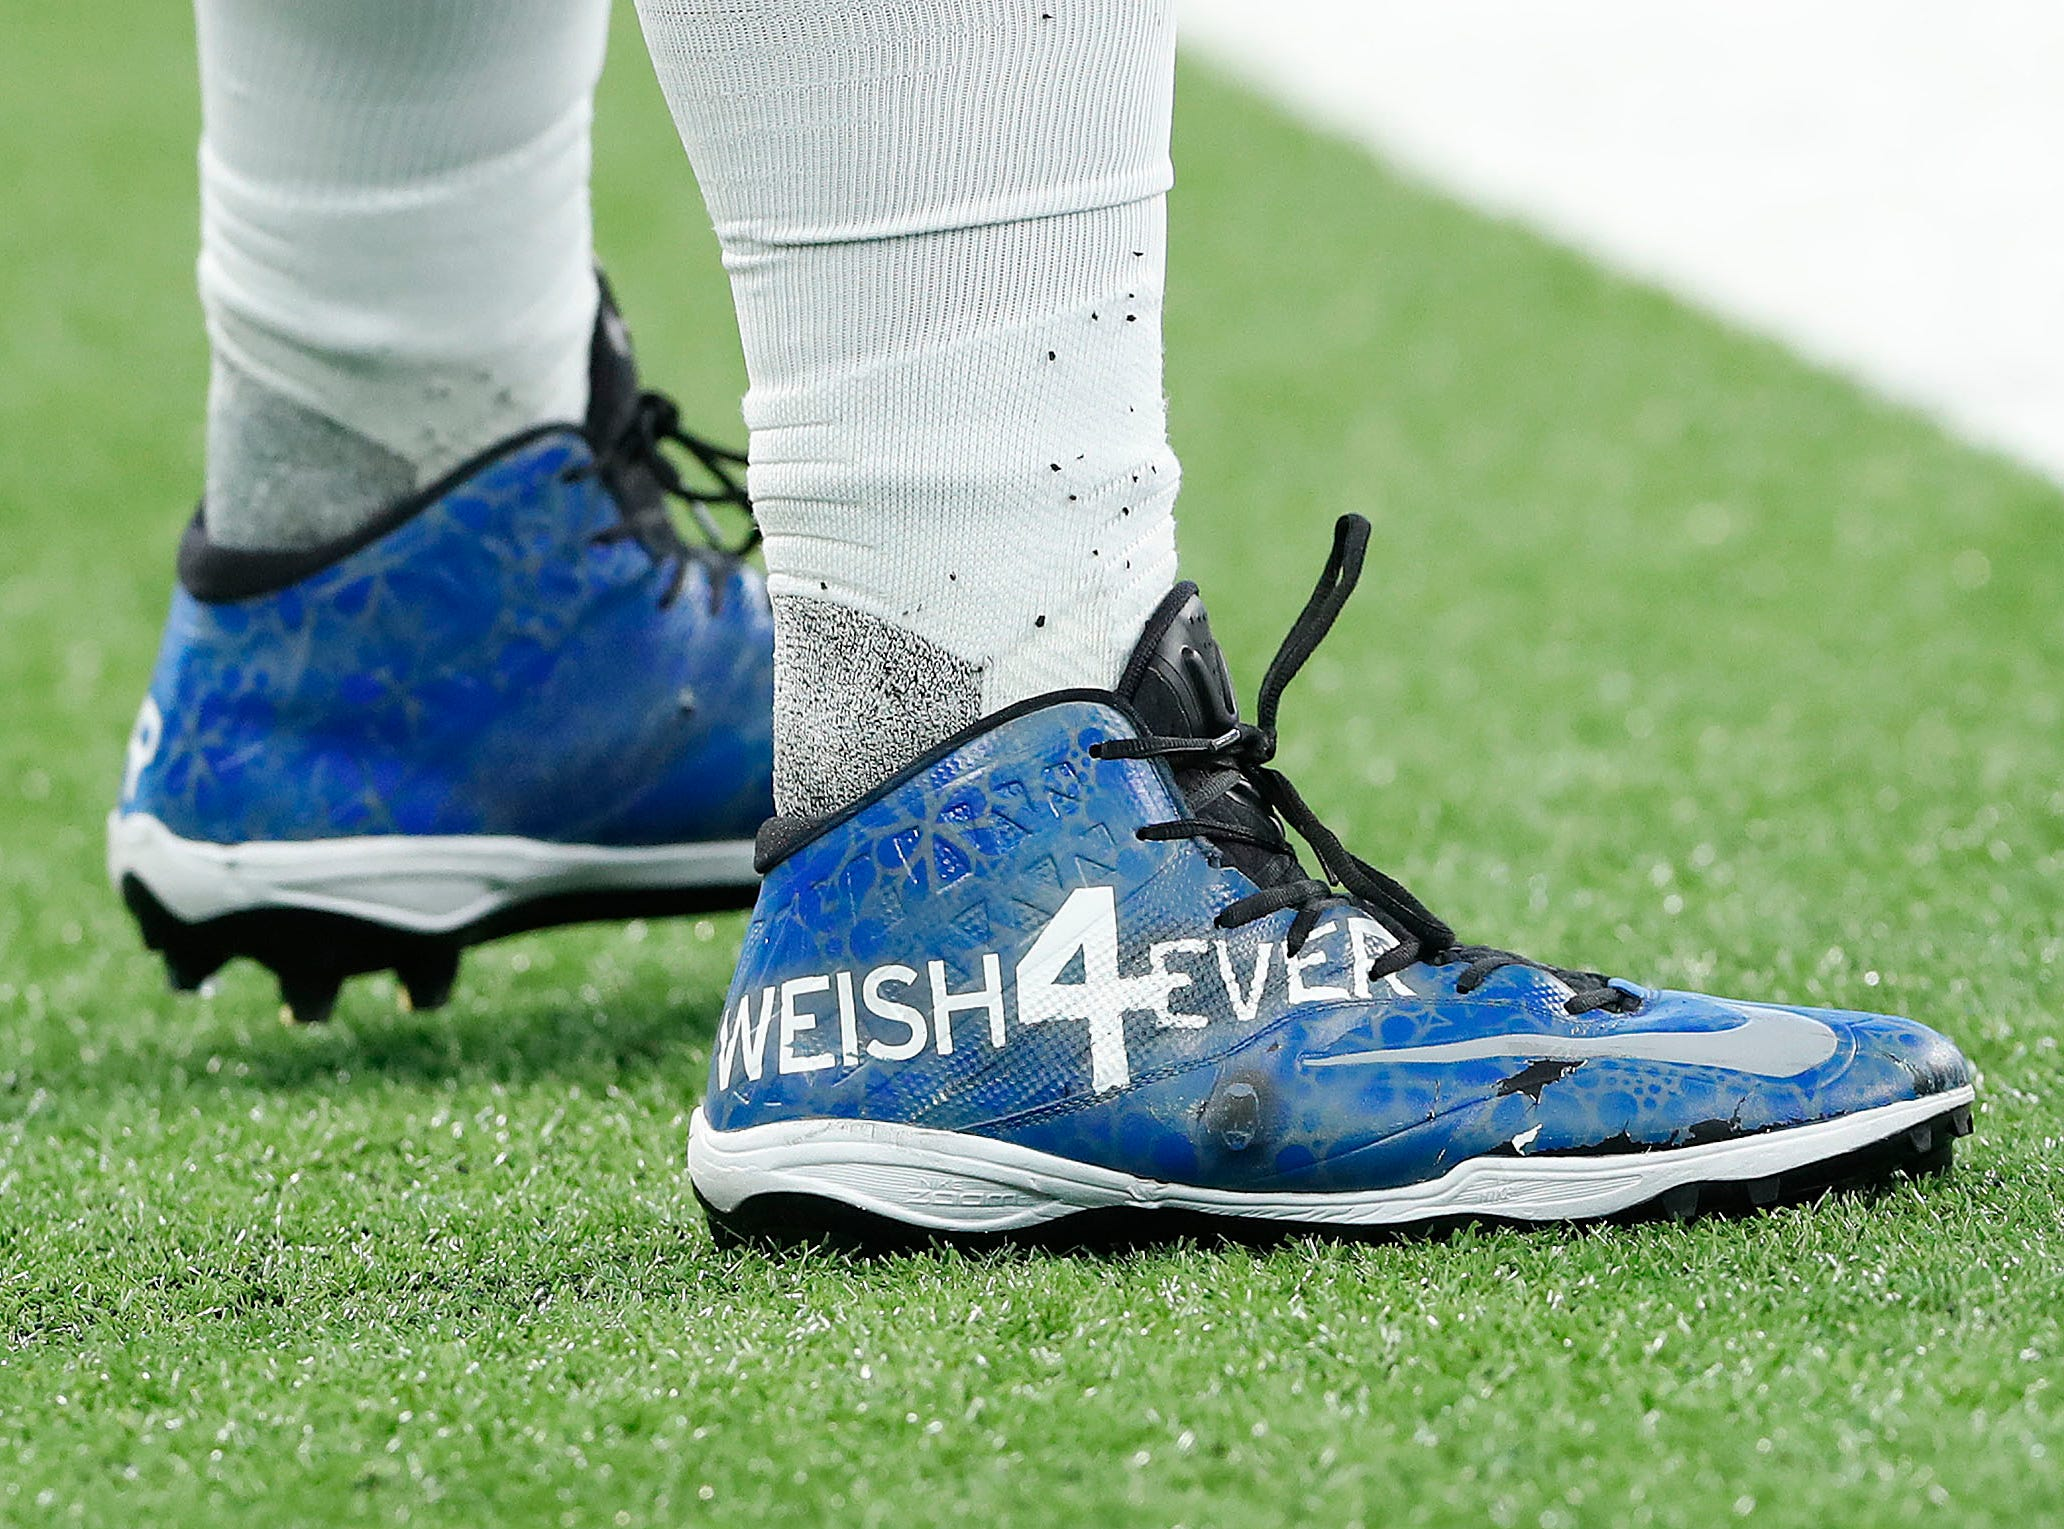 Indianapolis Colts offensive guard Quenton Nelson (56) and his My Cleats, My Cause before the start of their game against the Dallas Cowboys at Lucas Oil Stadium on Sunday, Dec. 16, 2018.